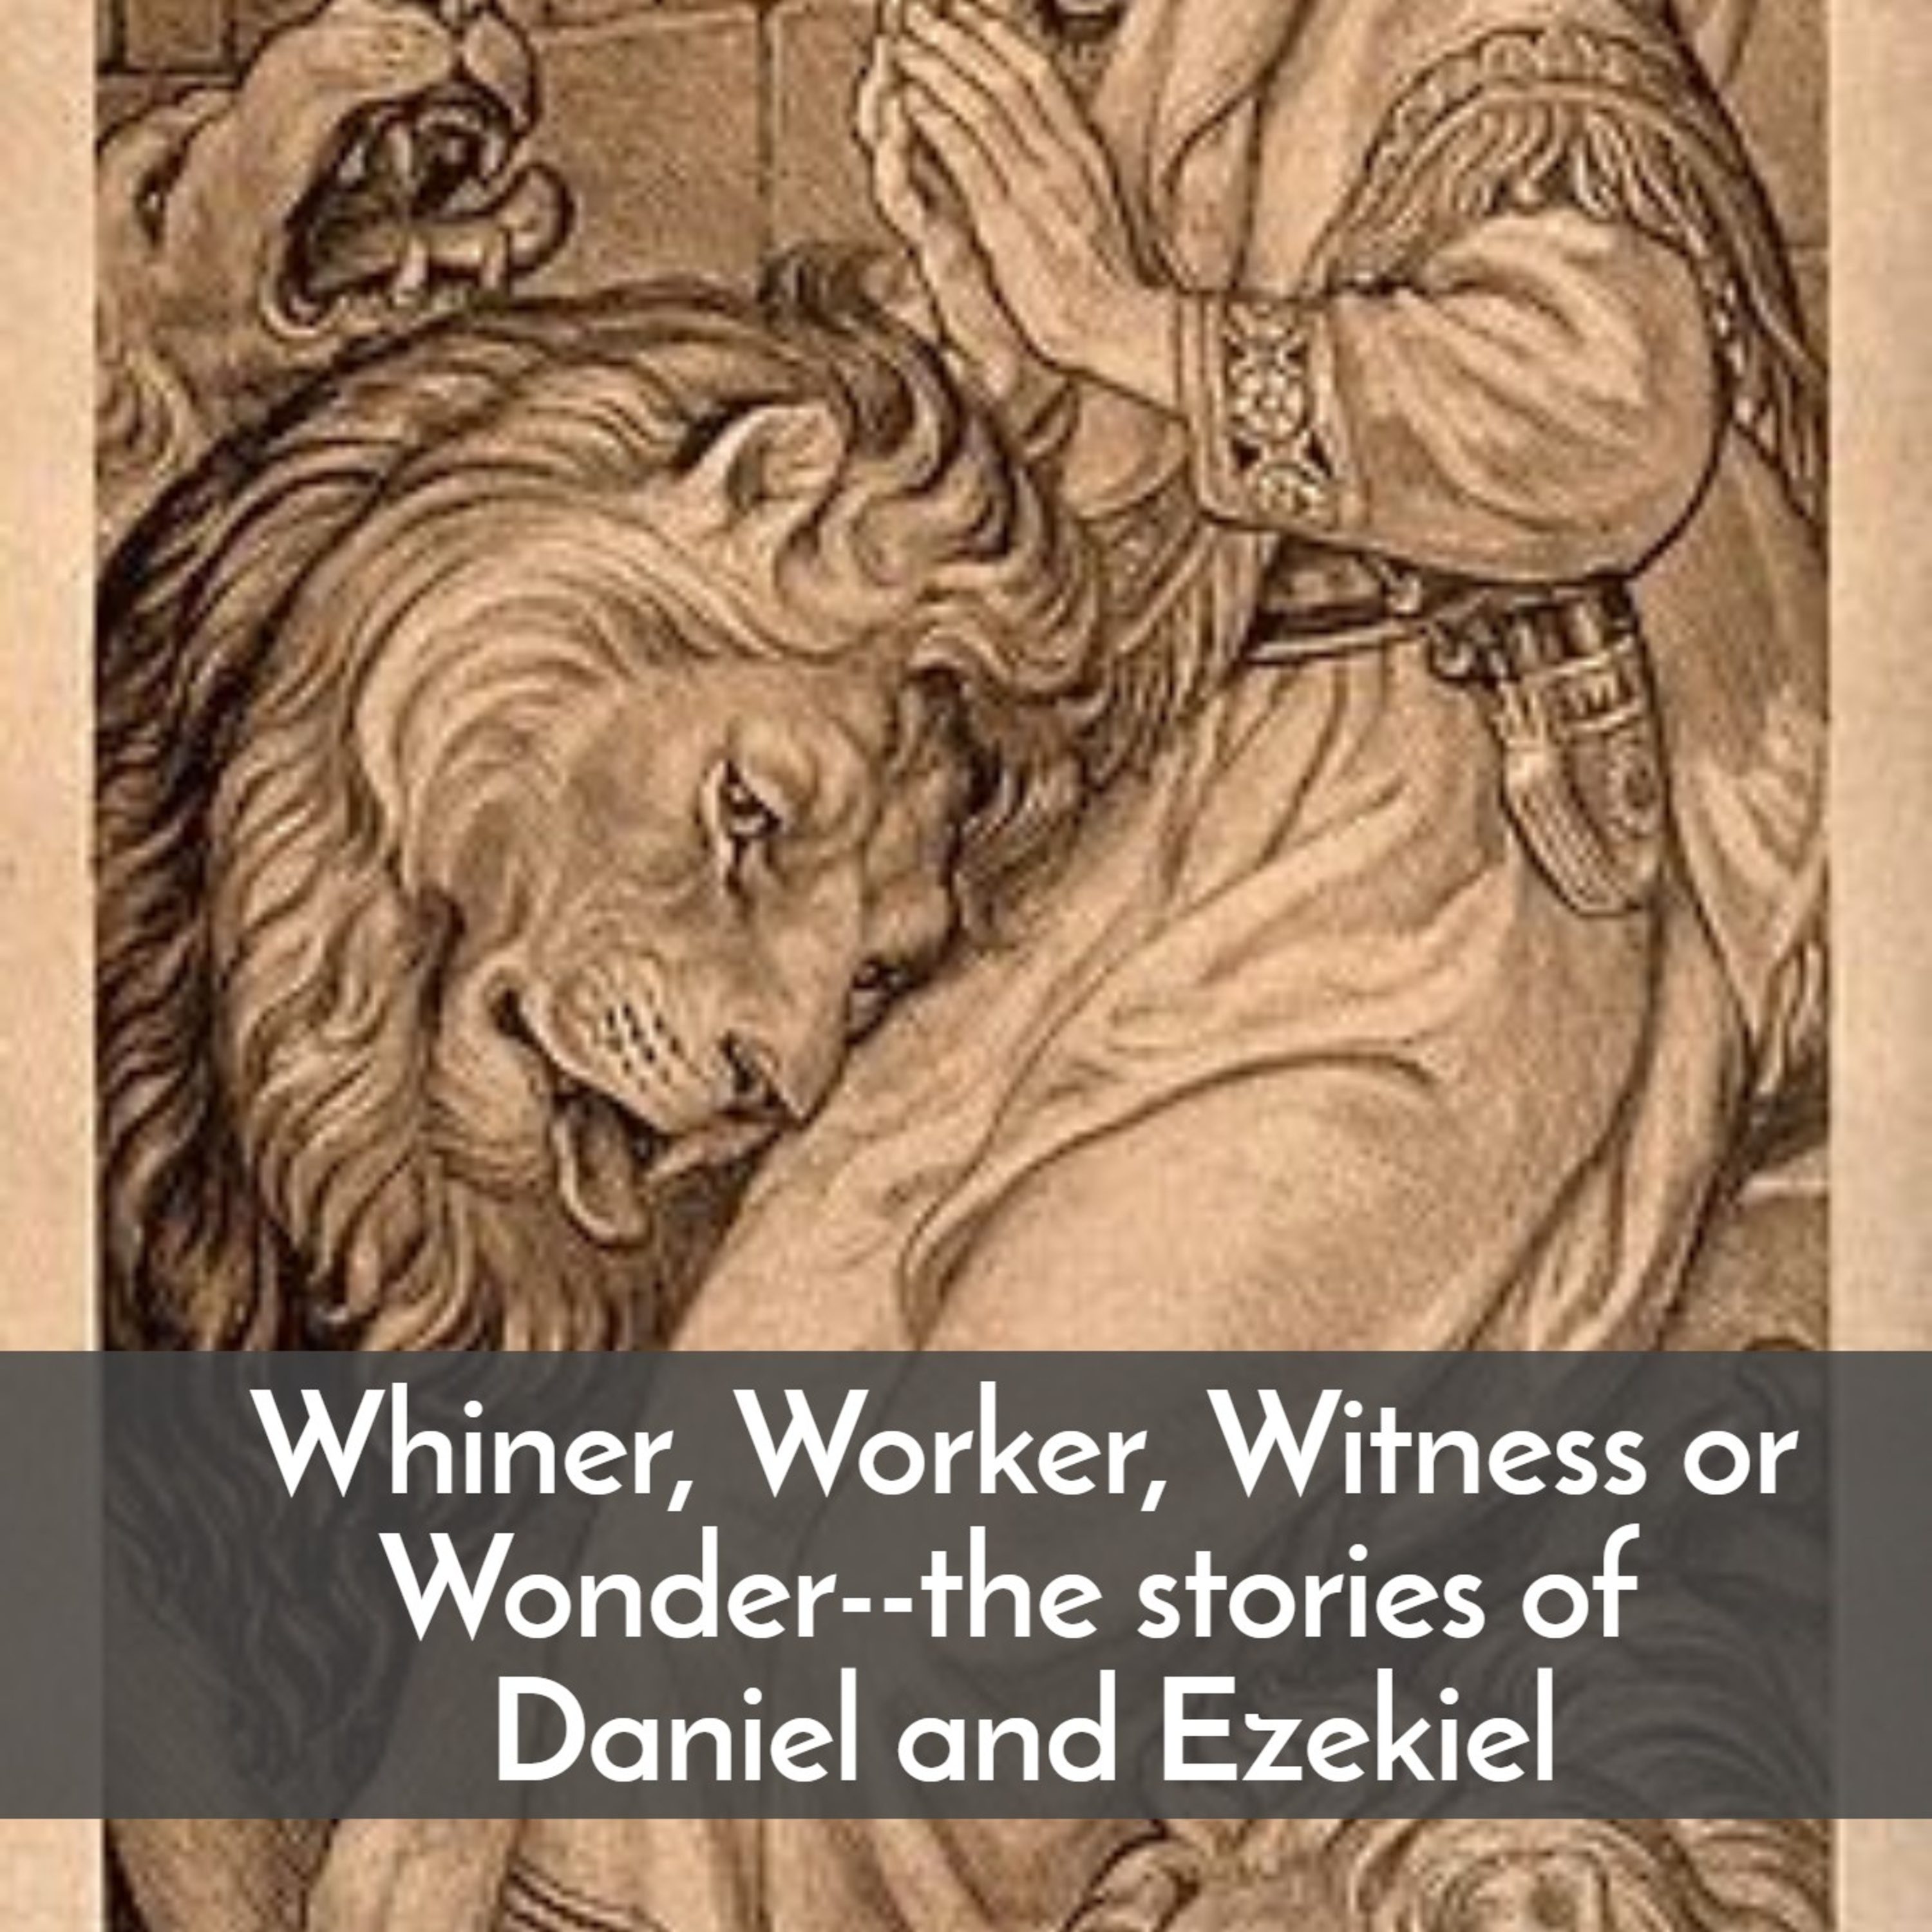 #48 Whiner, Worker, Witness, or Wonder? Ezekiel and Daniel, lessons learned